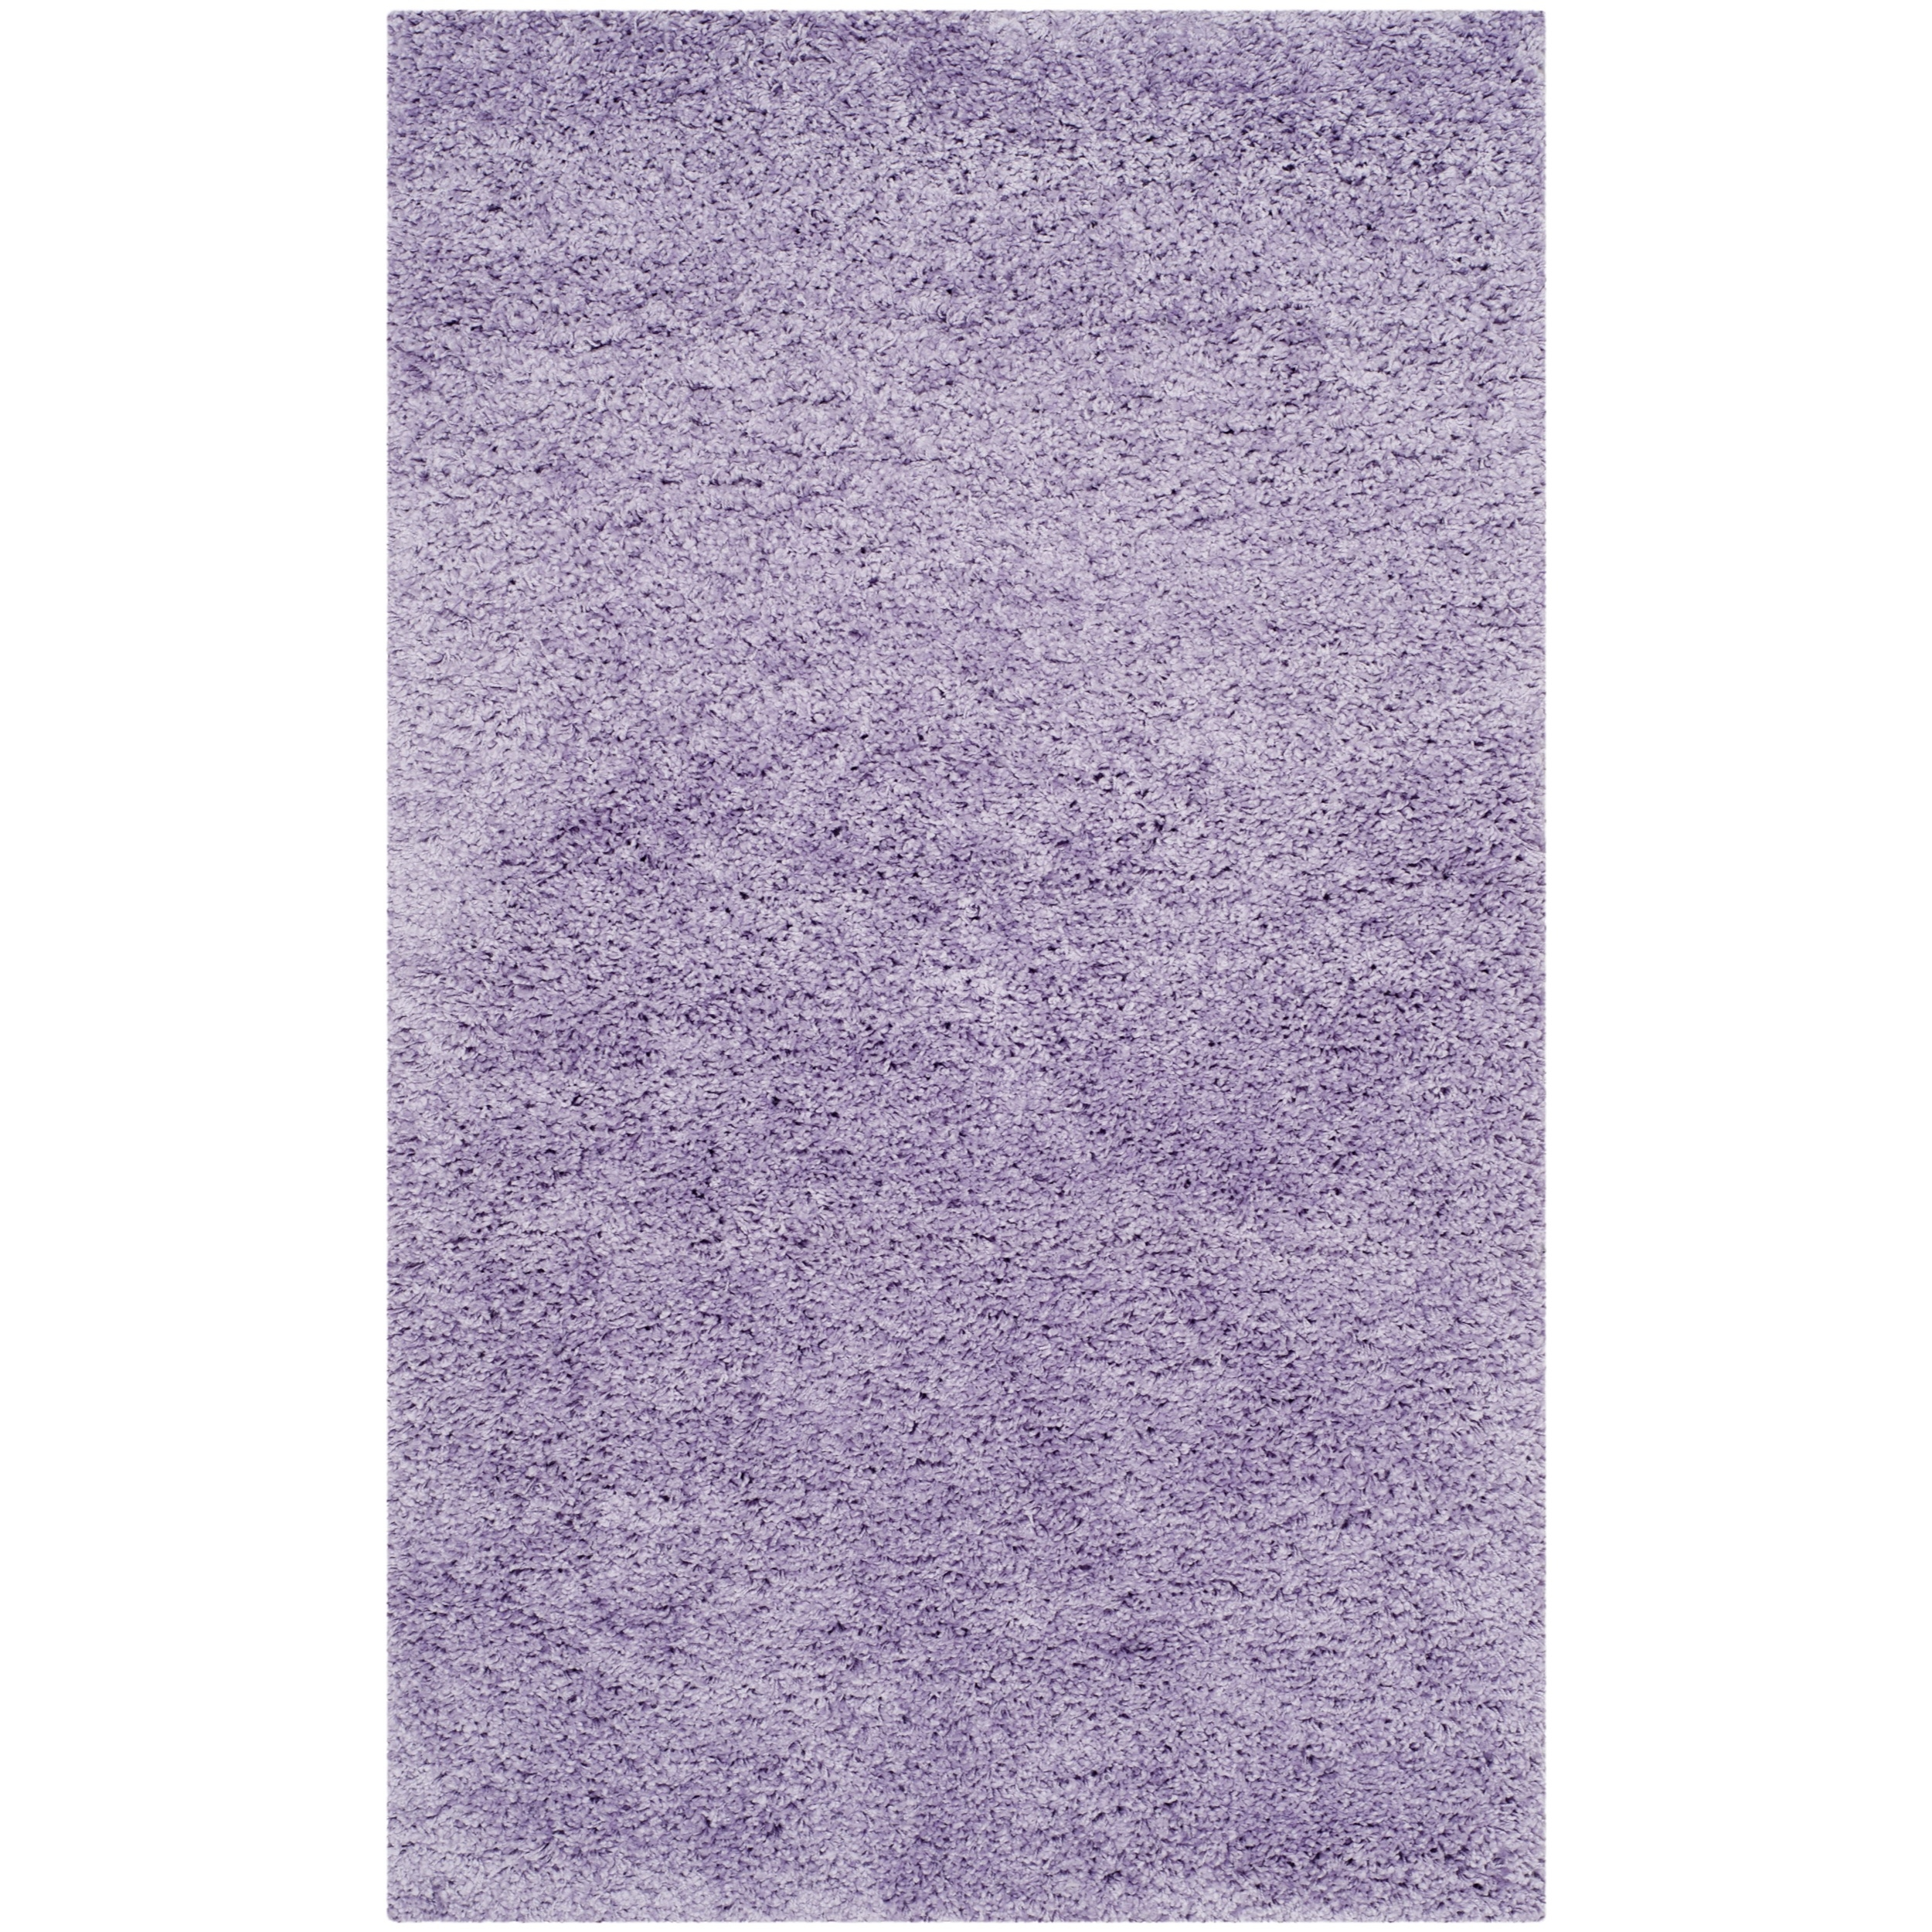 Safavieh Power Loomed Lilac Plush Shag Area Rugs Sg151 7272 Ebay Regarding Lilac Rugs (Image 15 of 15)